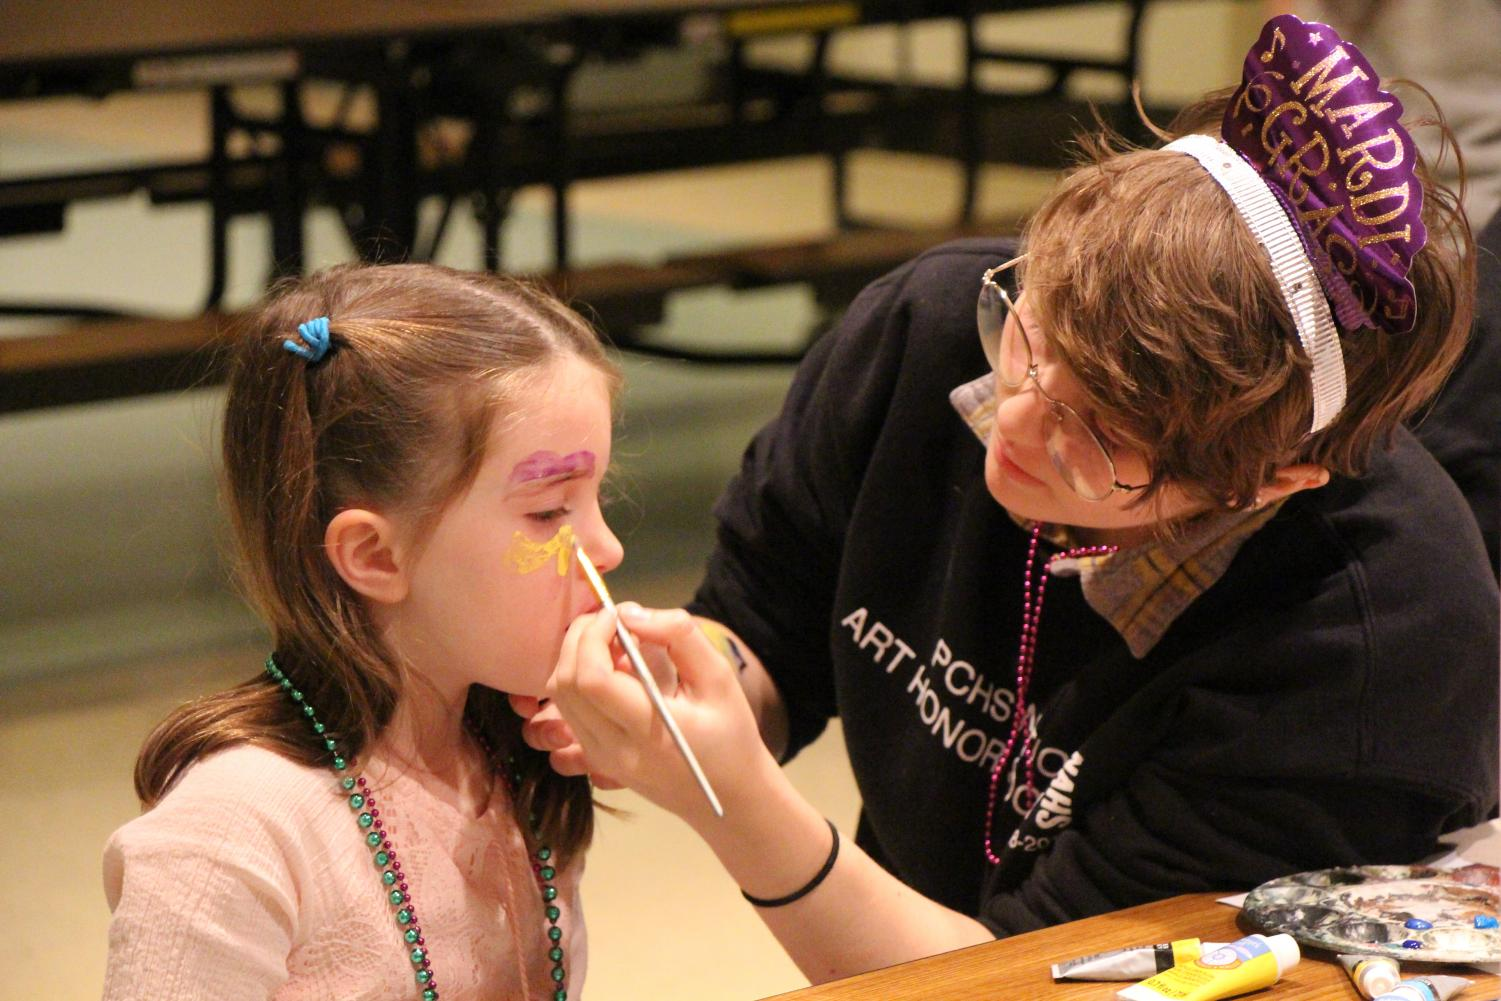 Junior Julia Jessen volunteers at the face painting station for National Art Honor Society at the Mardi Gras celebration in the cafeteria on Tuesday, March 5th.